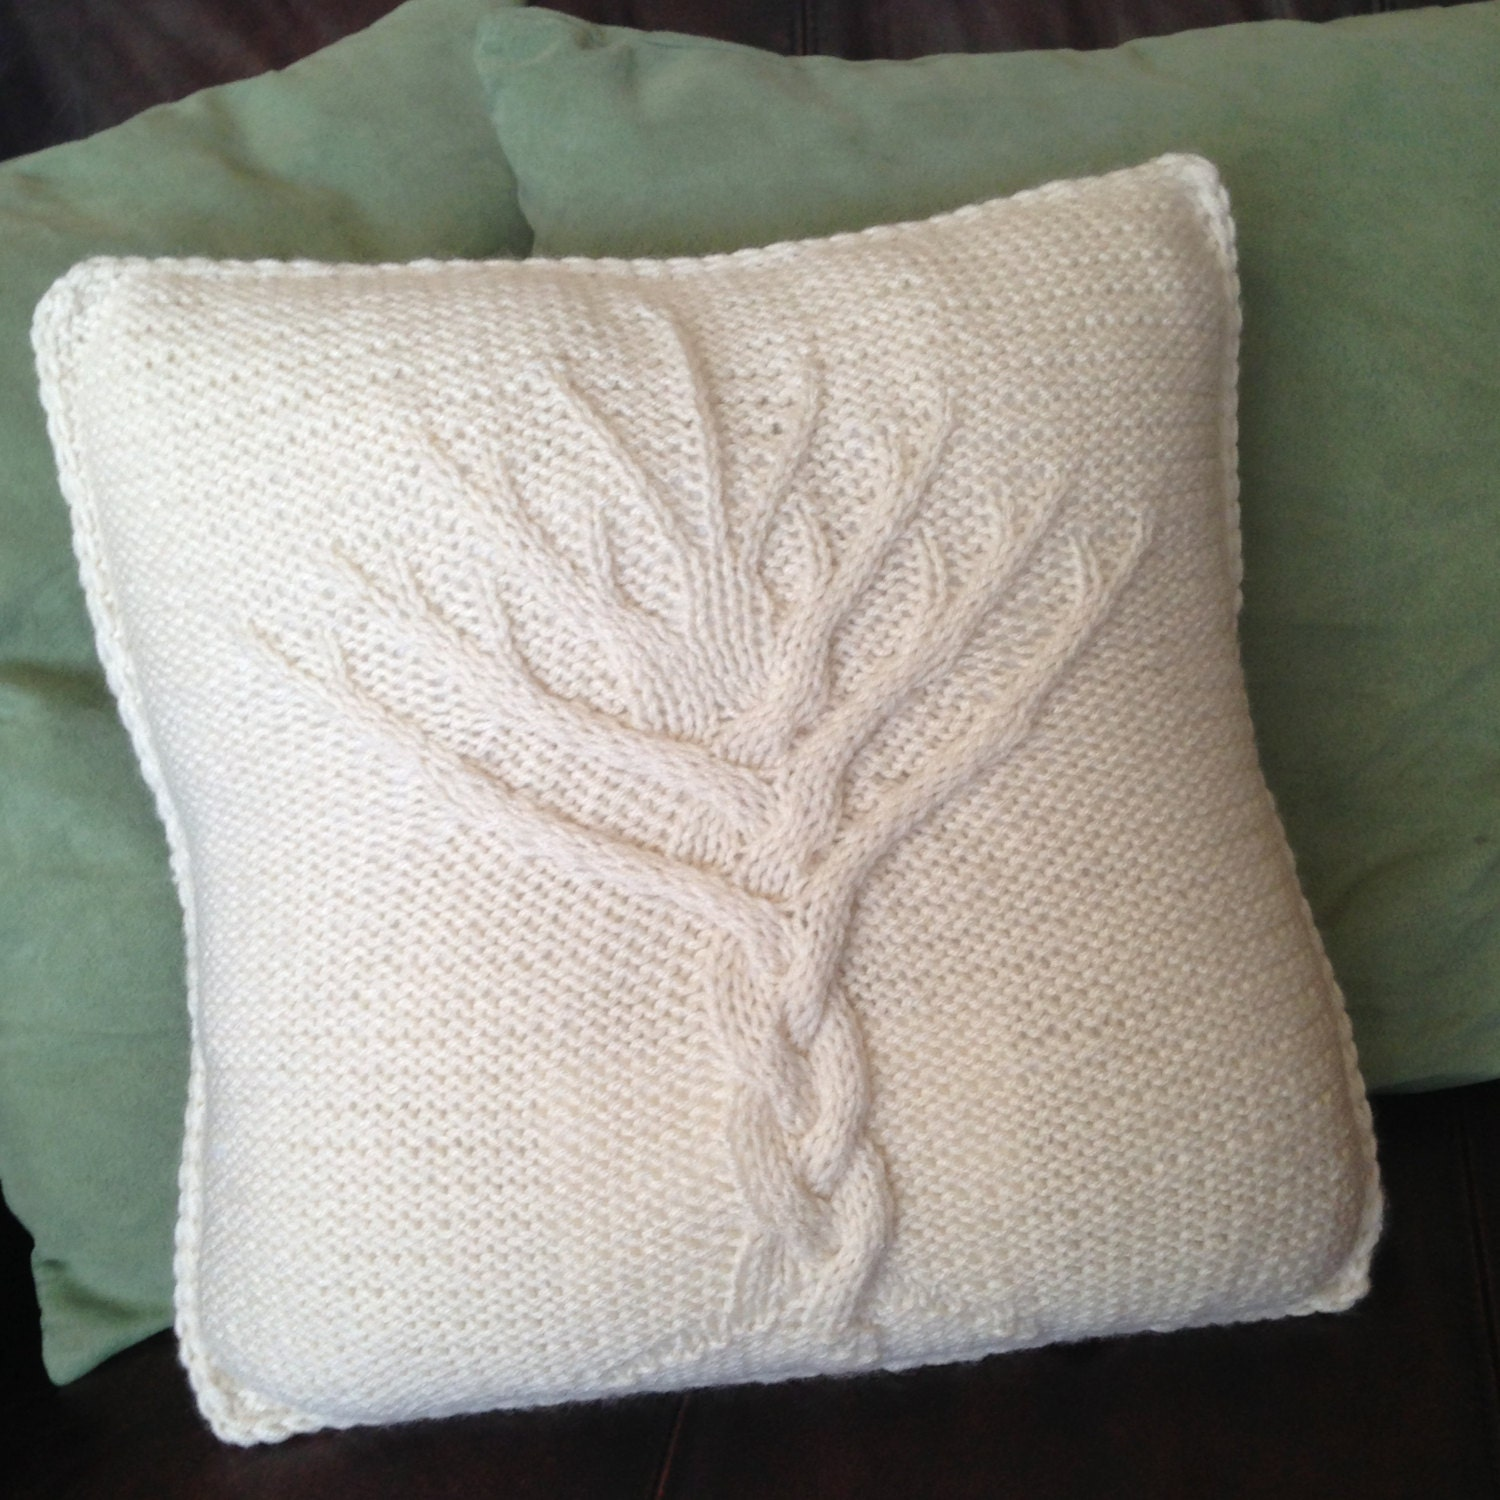 FANTASTIC HAND KNITTED CUSHION COVER PATTERN - TREE OF LIFE eBay